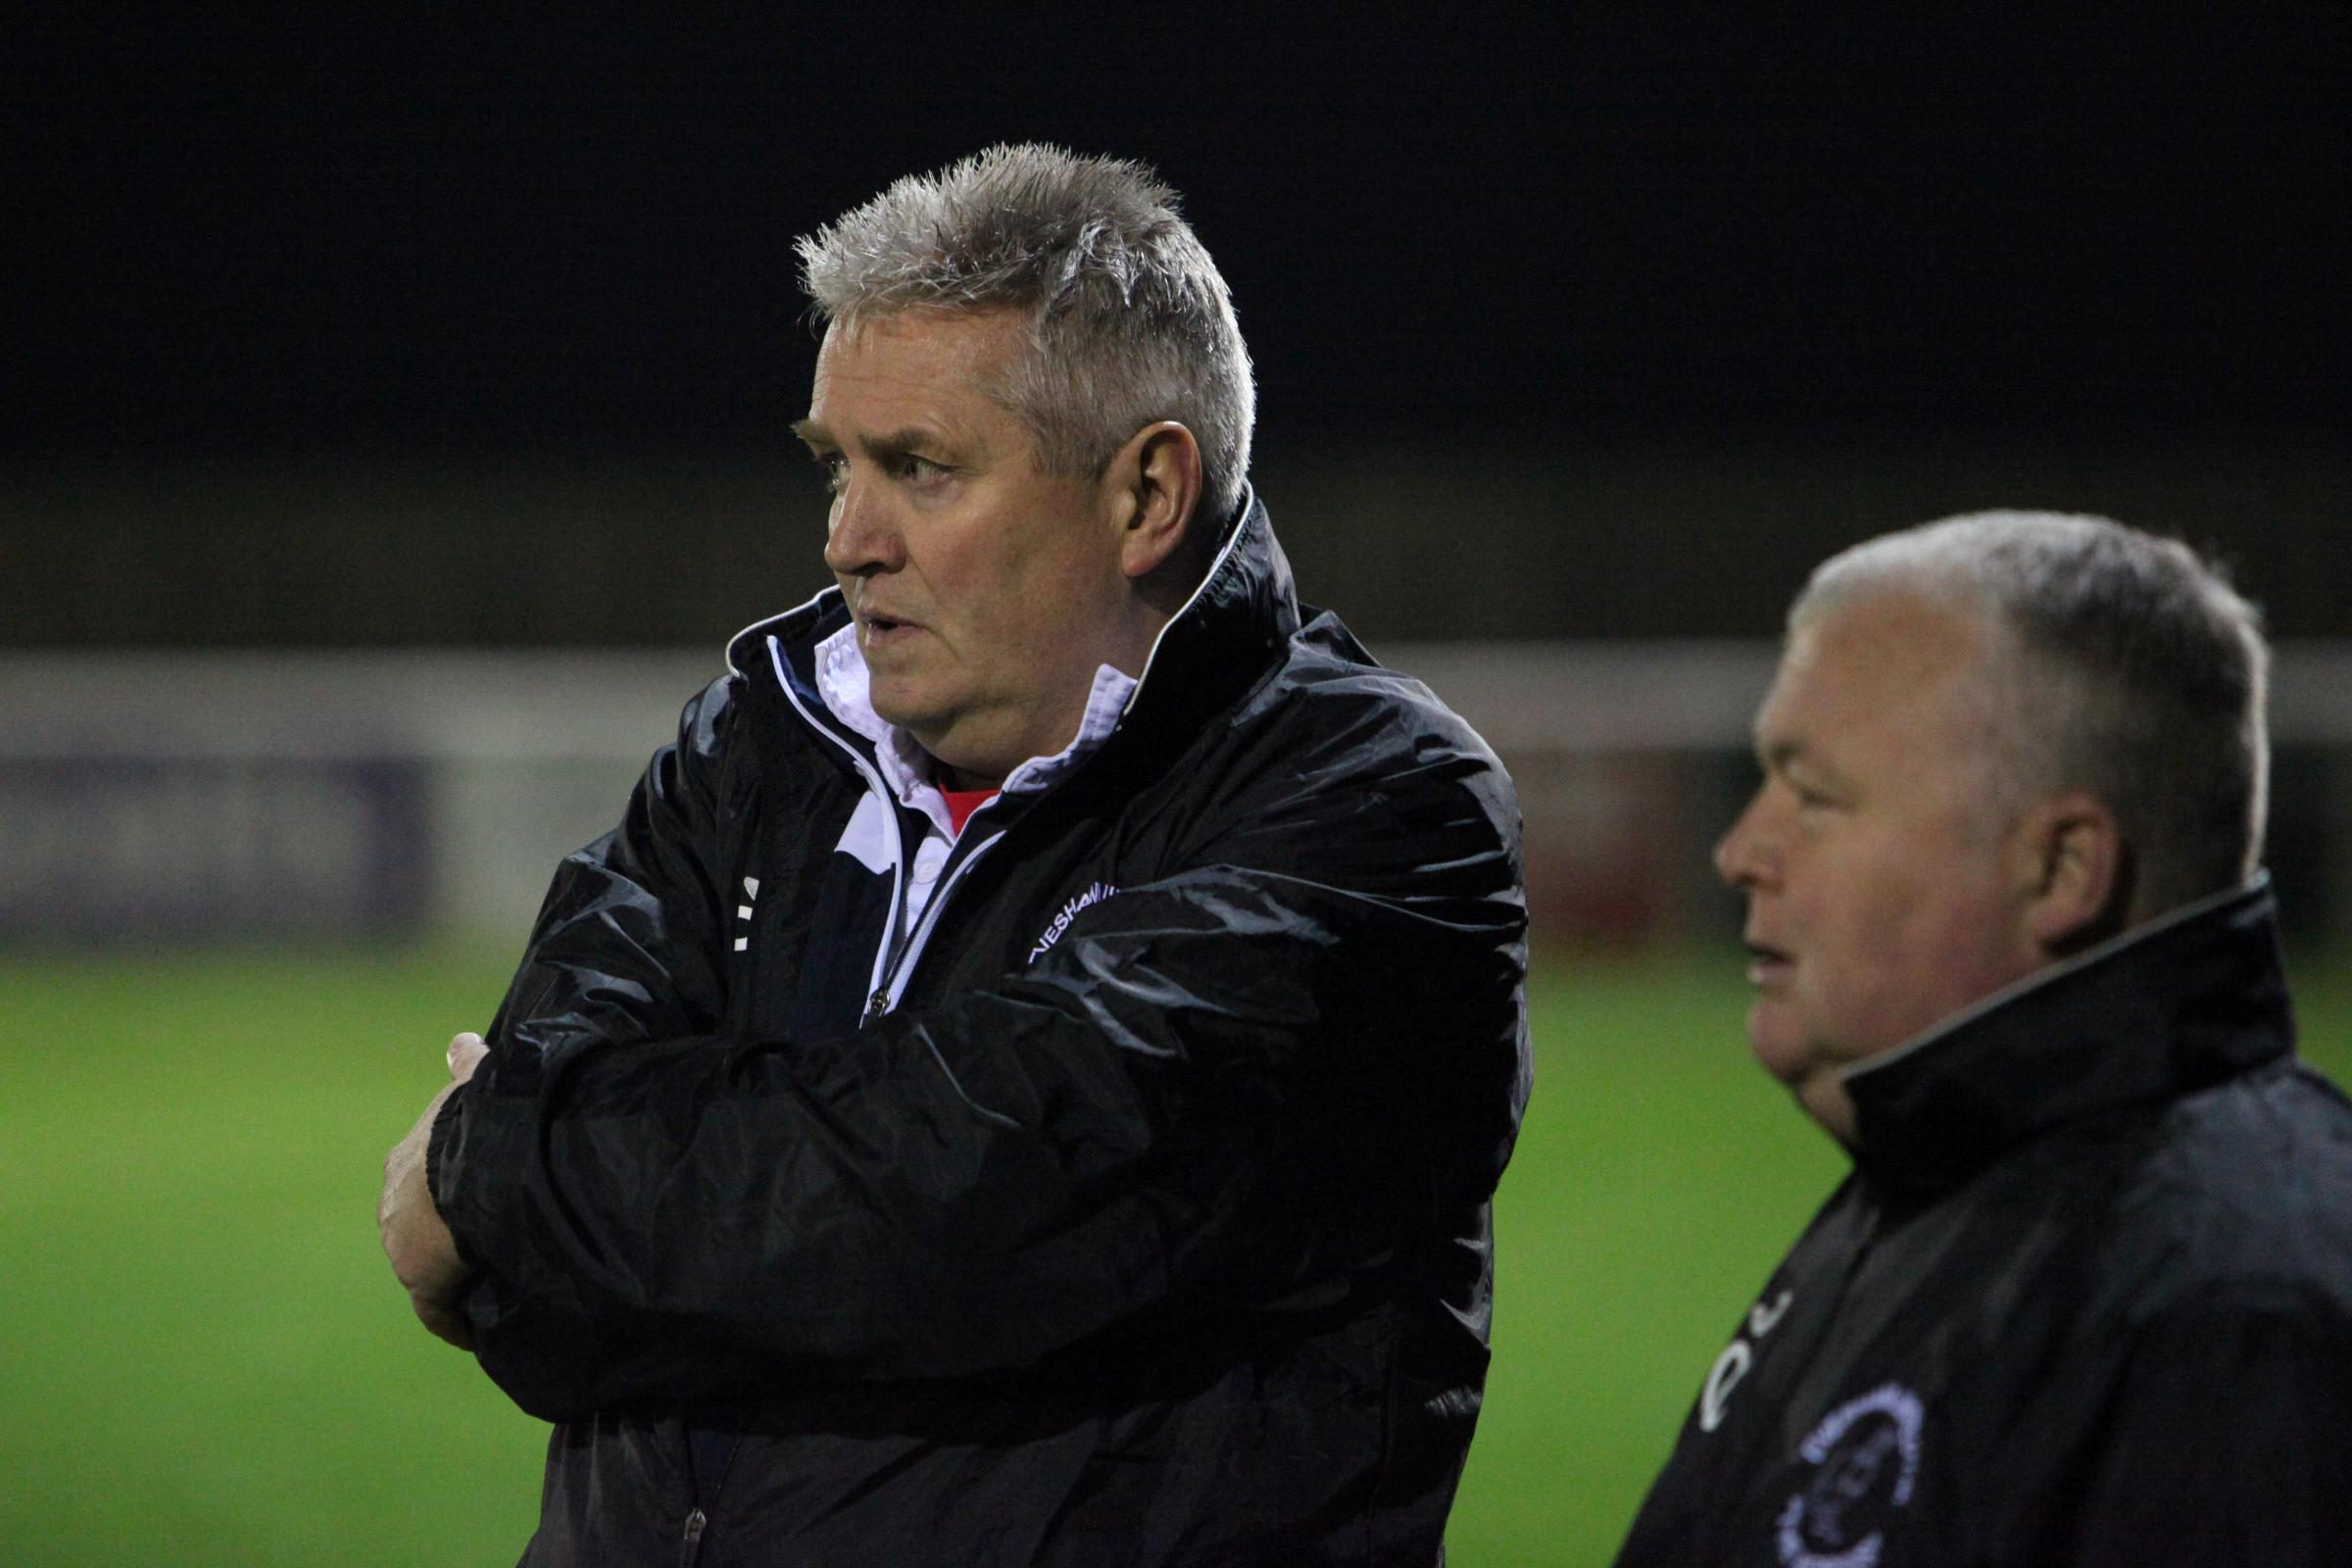 Evesham United manager Paul Collicutt. Picture: www.stuartpurfield.co.uk